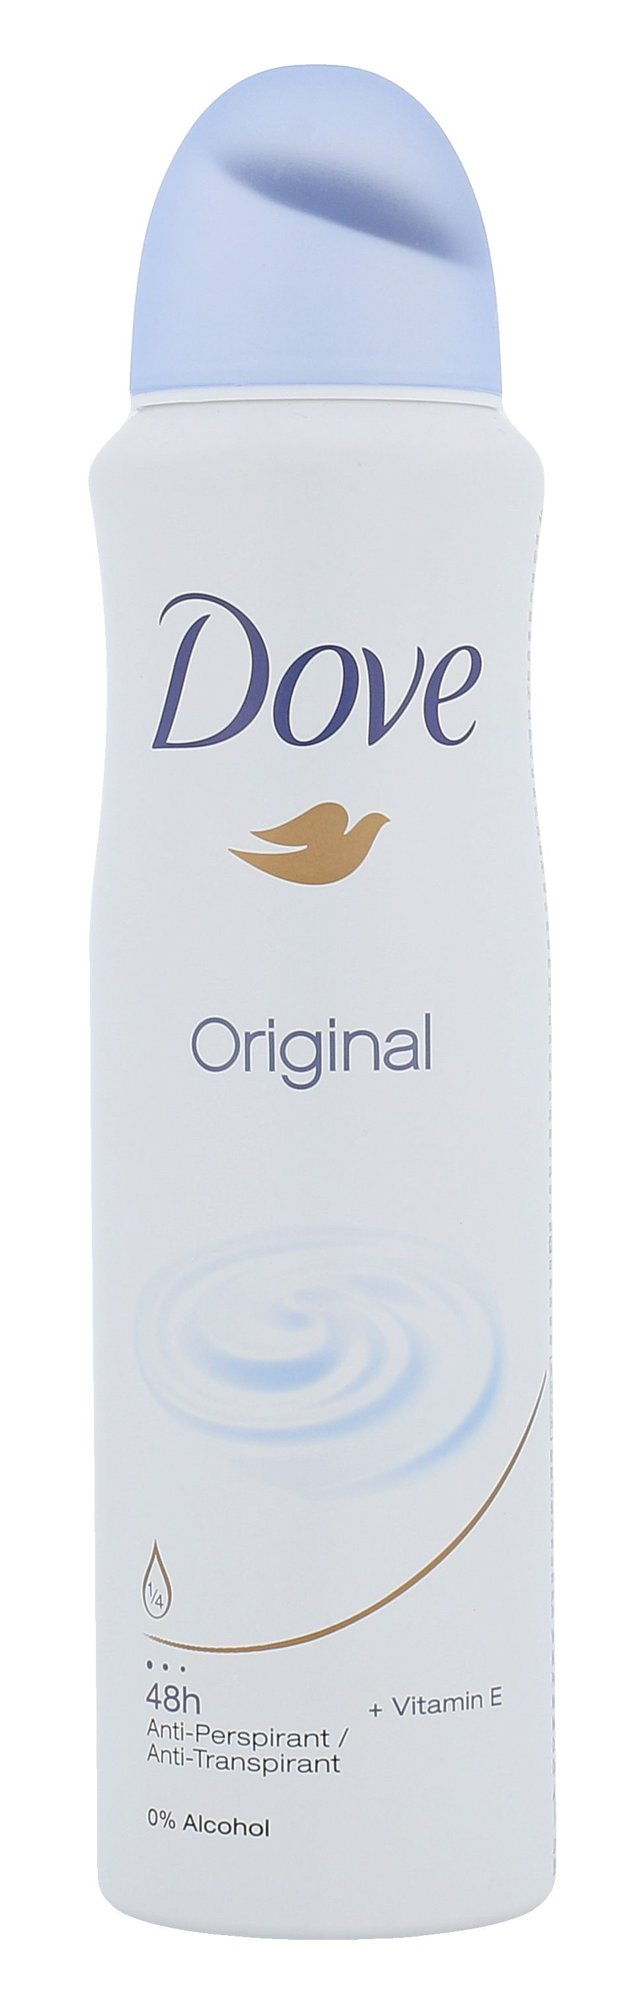 Dove Original Cosmetic 150ml